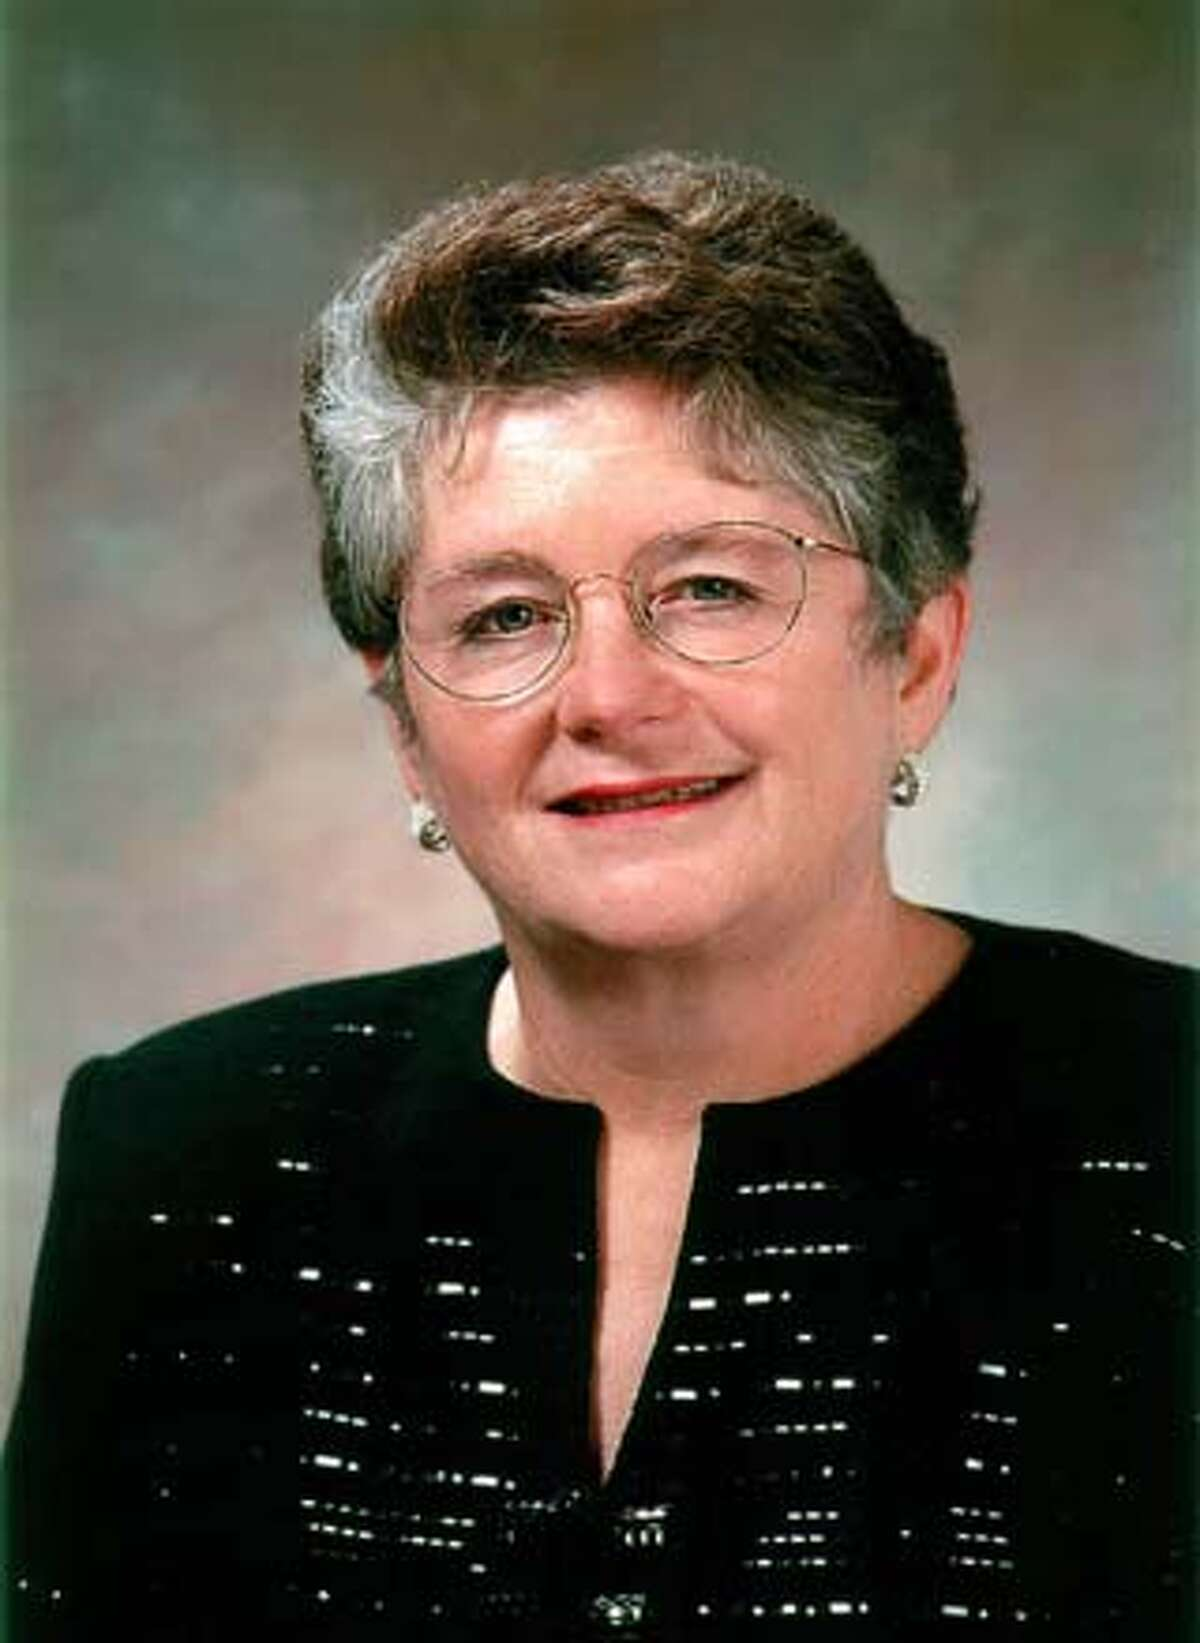 M.R.C. Greenwood is provost and senior vice president for academic affairs for the 10-campus UC system. Ran on: 11-05-2005 M.R.C. Greenwood, UC provost, is being investigated for promoting her friend, Lynda Goff. Ran on: 11-05-2005 M.R.C. Greenwood, UC provost, is being investigated for promoting her friend, Lynda Goff. Ran on: 11-11-2005 Robert Dynes Ran on: 11-11-2005 Robert Dynes